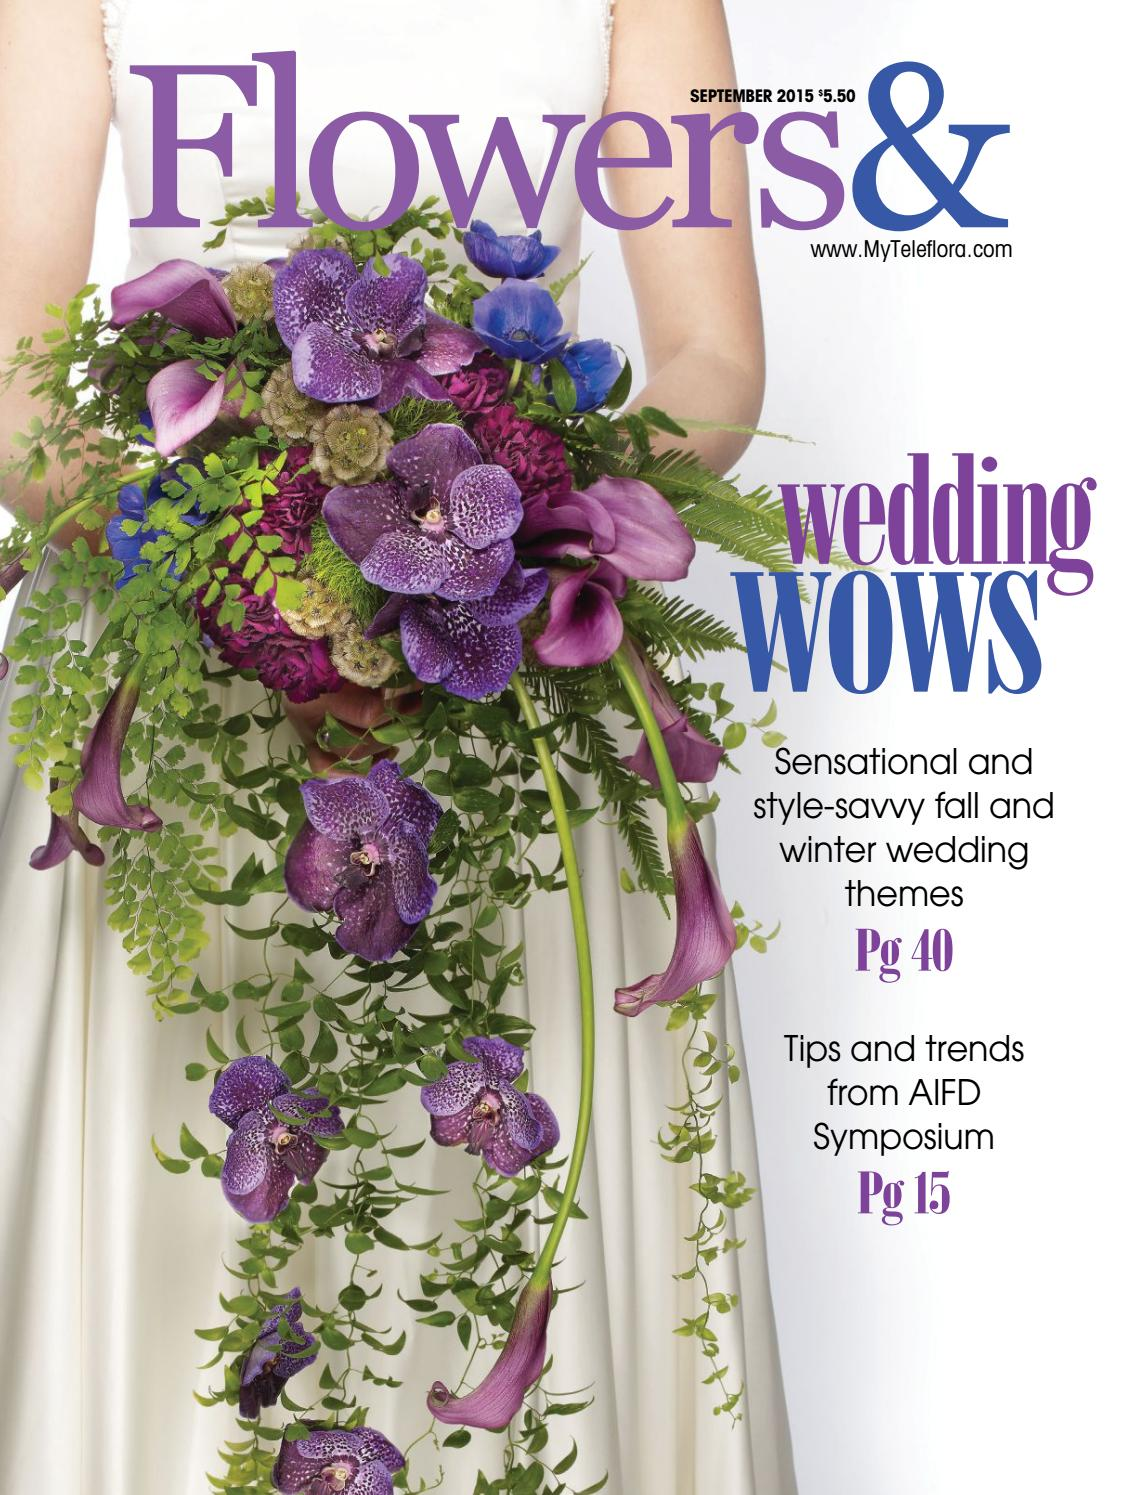 candle and lantern wedding decor washington dc wedding.htm flowers  september 2015 by teleflora issuu  flowers  september 2015 by teleflora